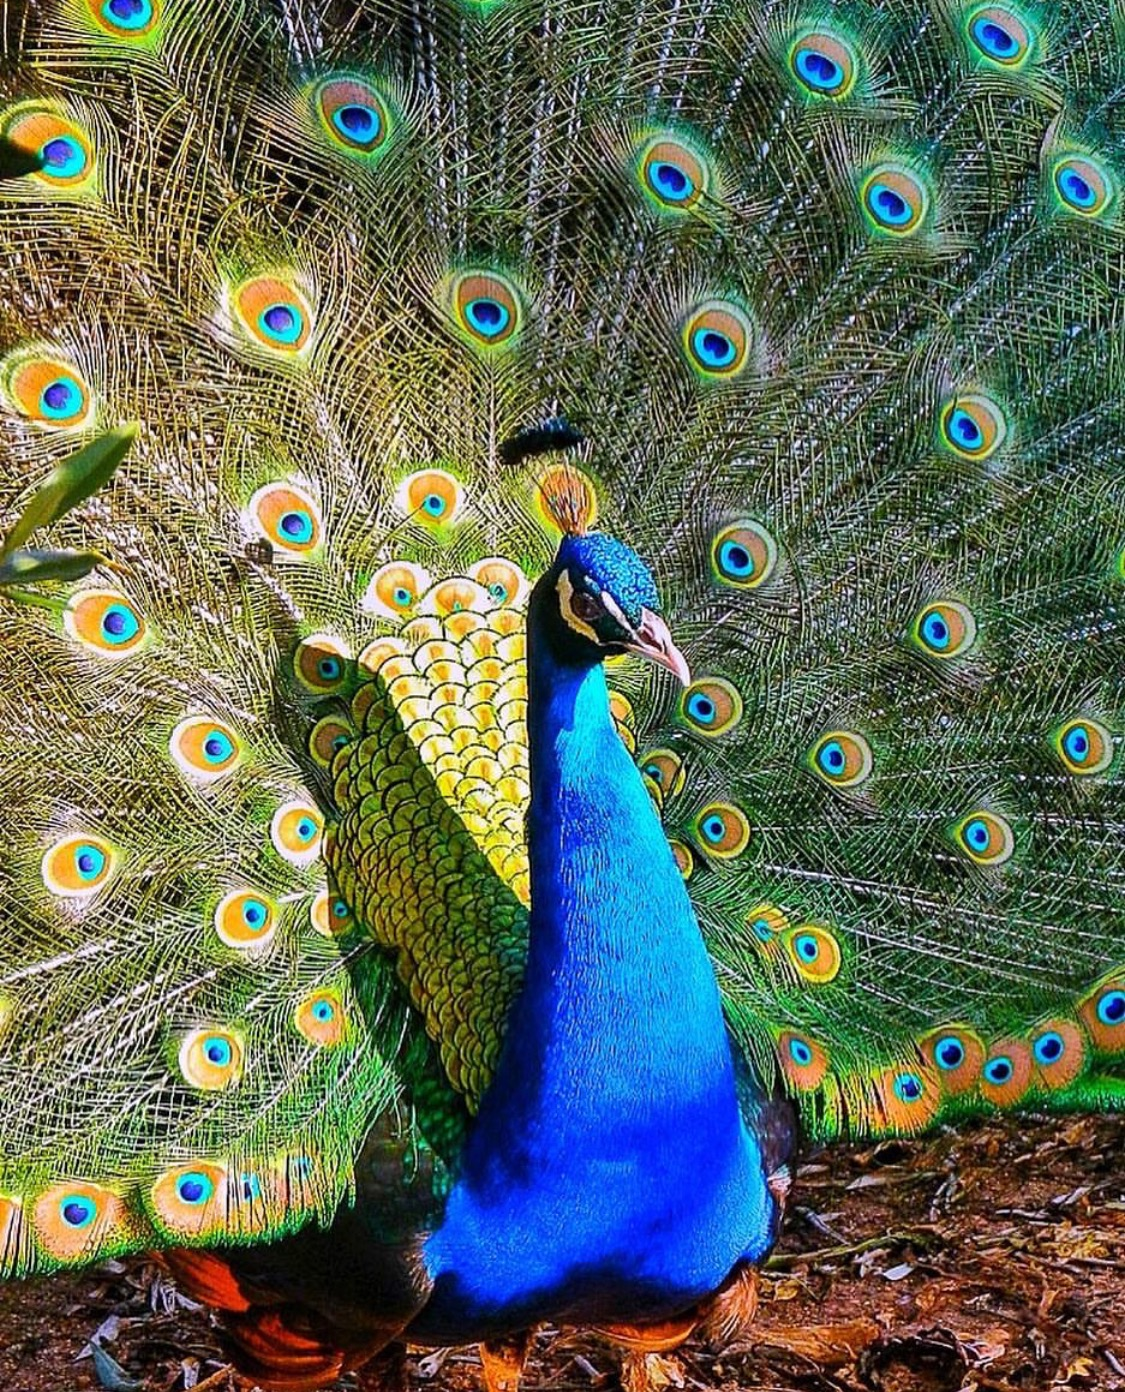 There's something incredibly regal about peacocks